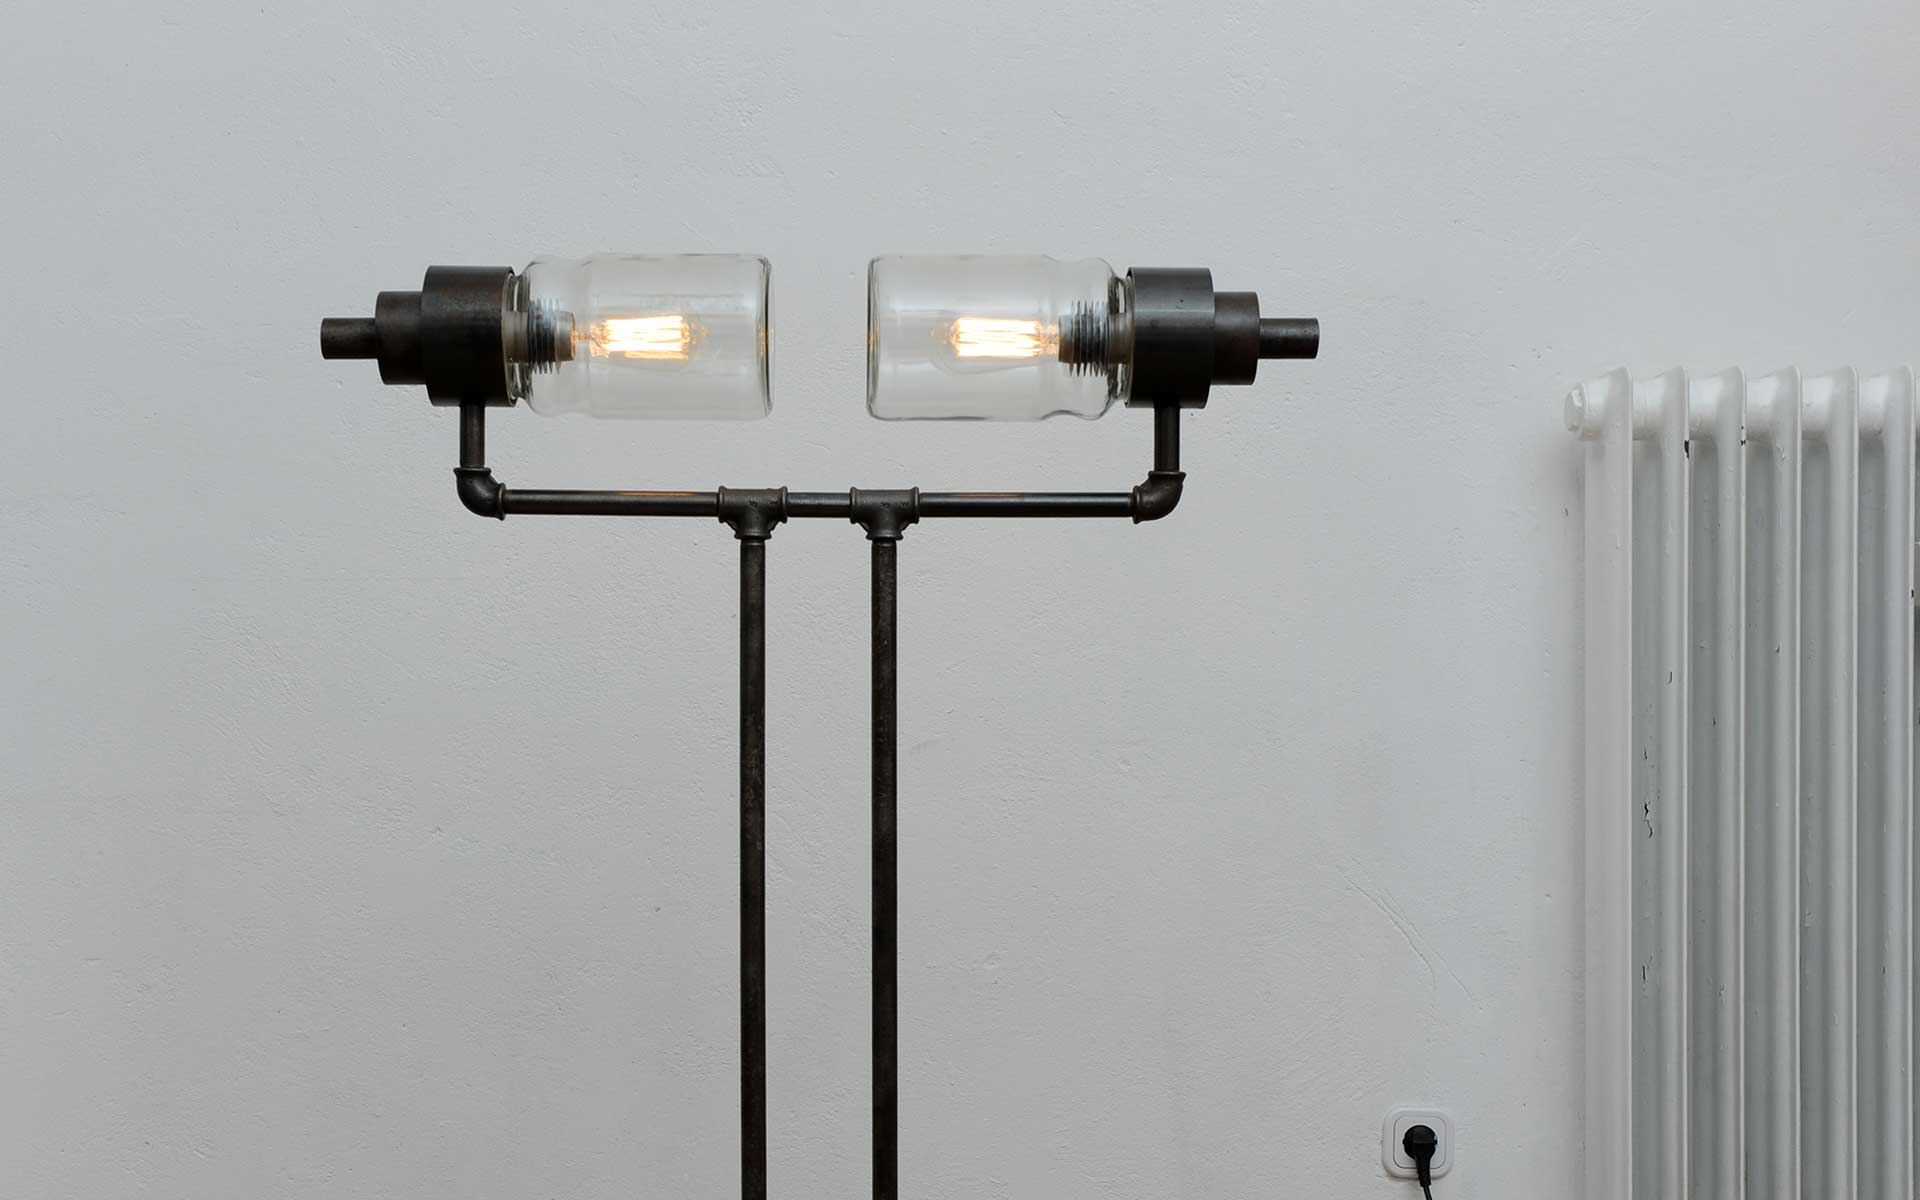 Lampen Im Industriedesign Offlight.eu - Lampen Im Industriedesign